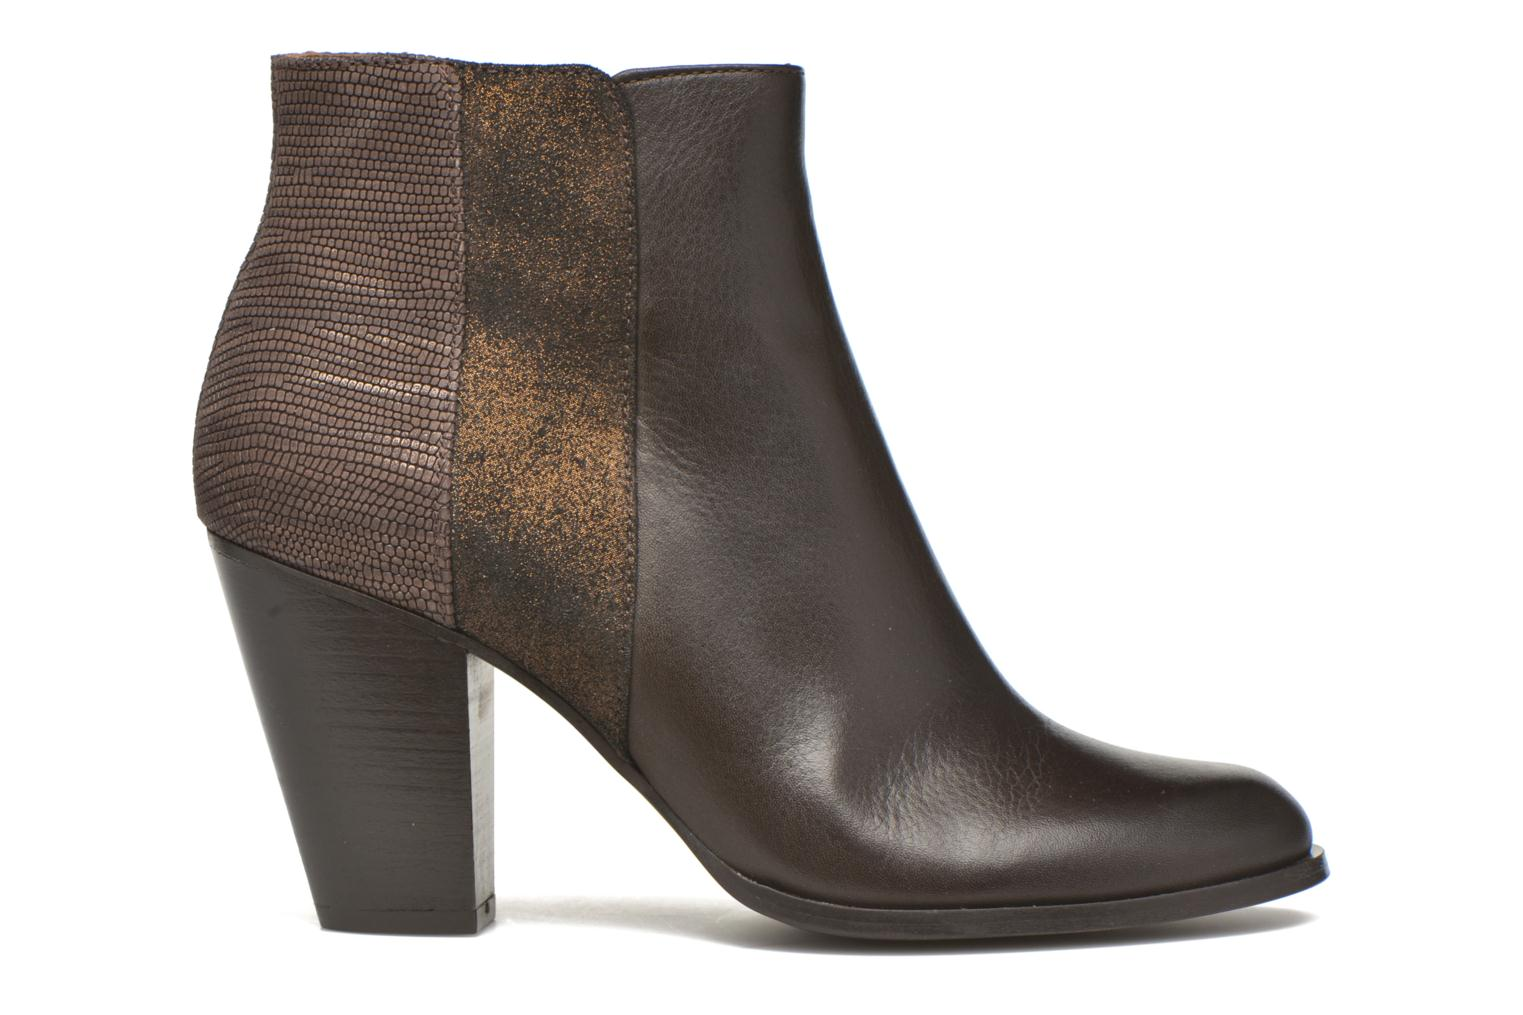 Bottines et boots Schmoove Woman Gravity delta Marron vue derrière